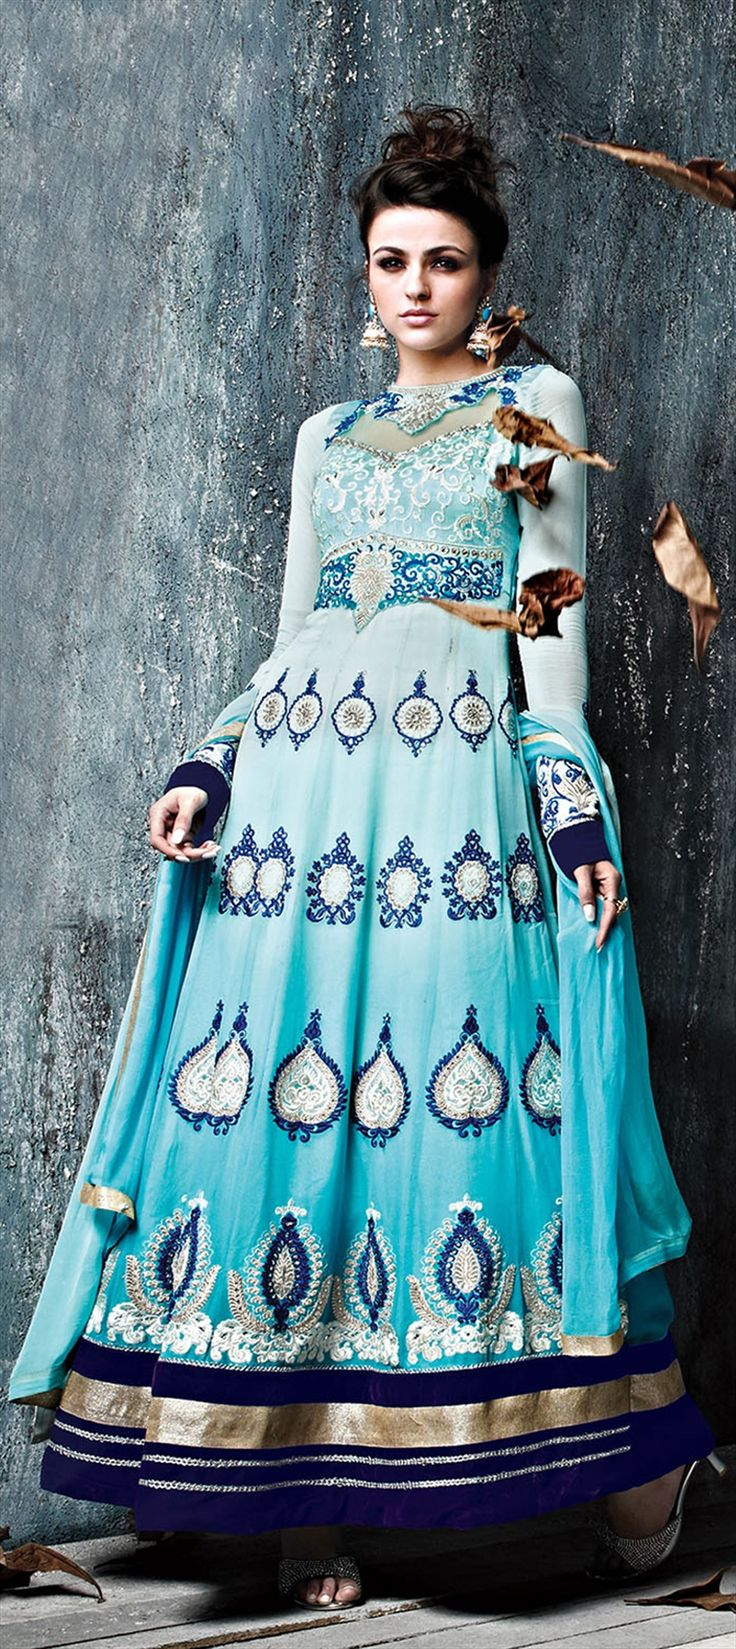 The 16 best outfit ideas for P\'s wedding images on Pinterest ...